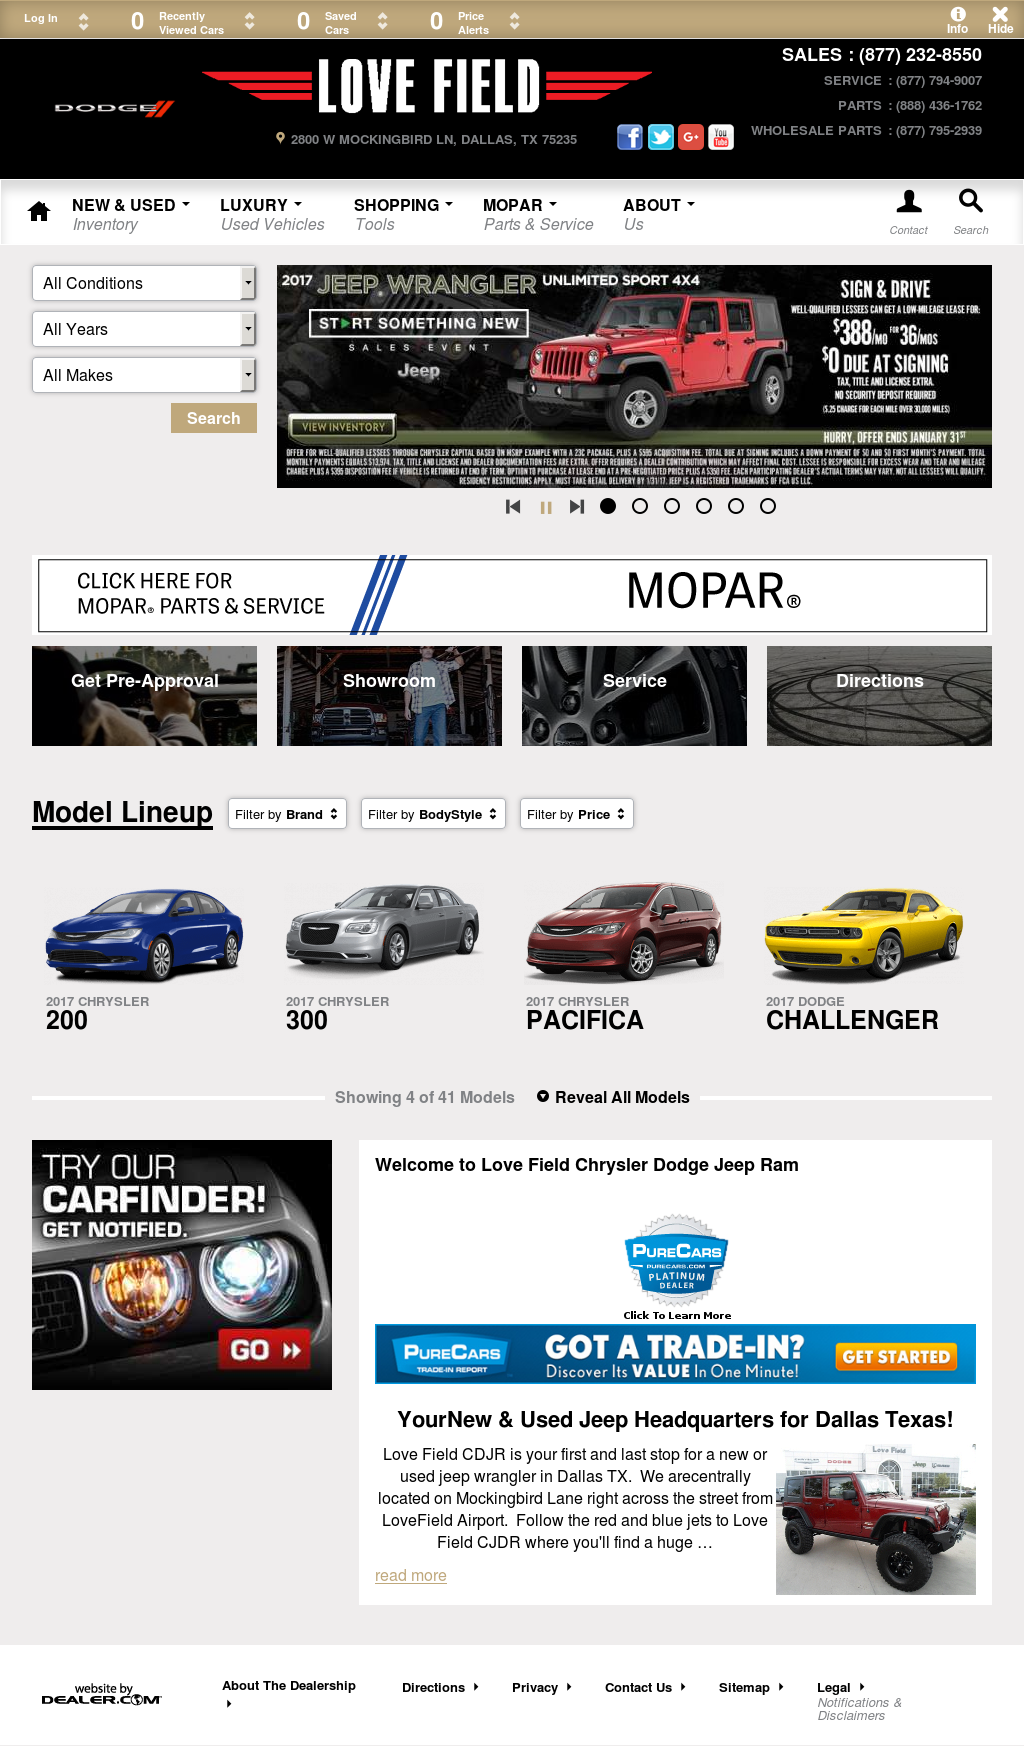 Love Field Chrysler Dodge Jeep Ram Competitors, Revenue And Employees    Owler Company Profile